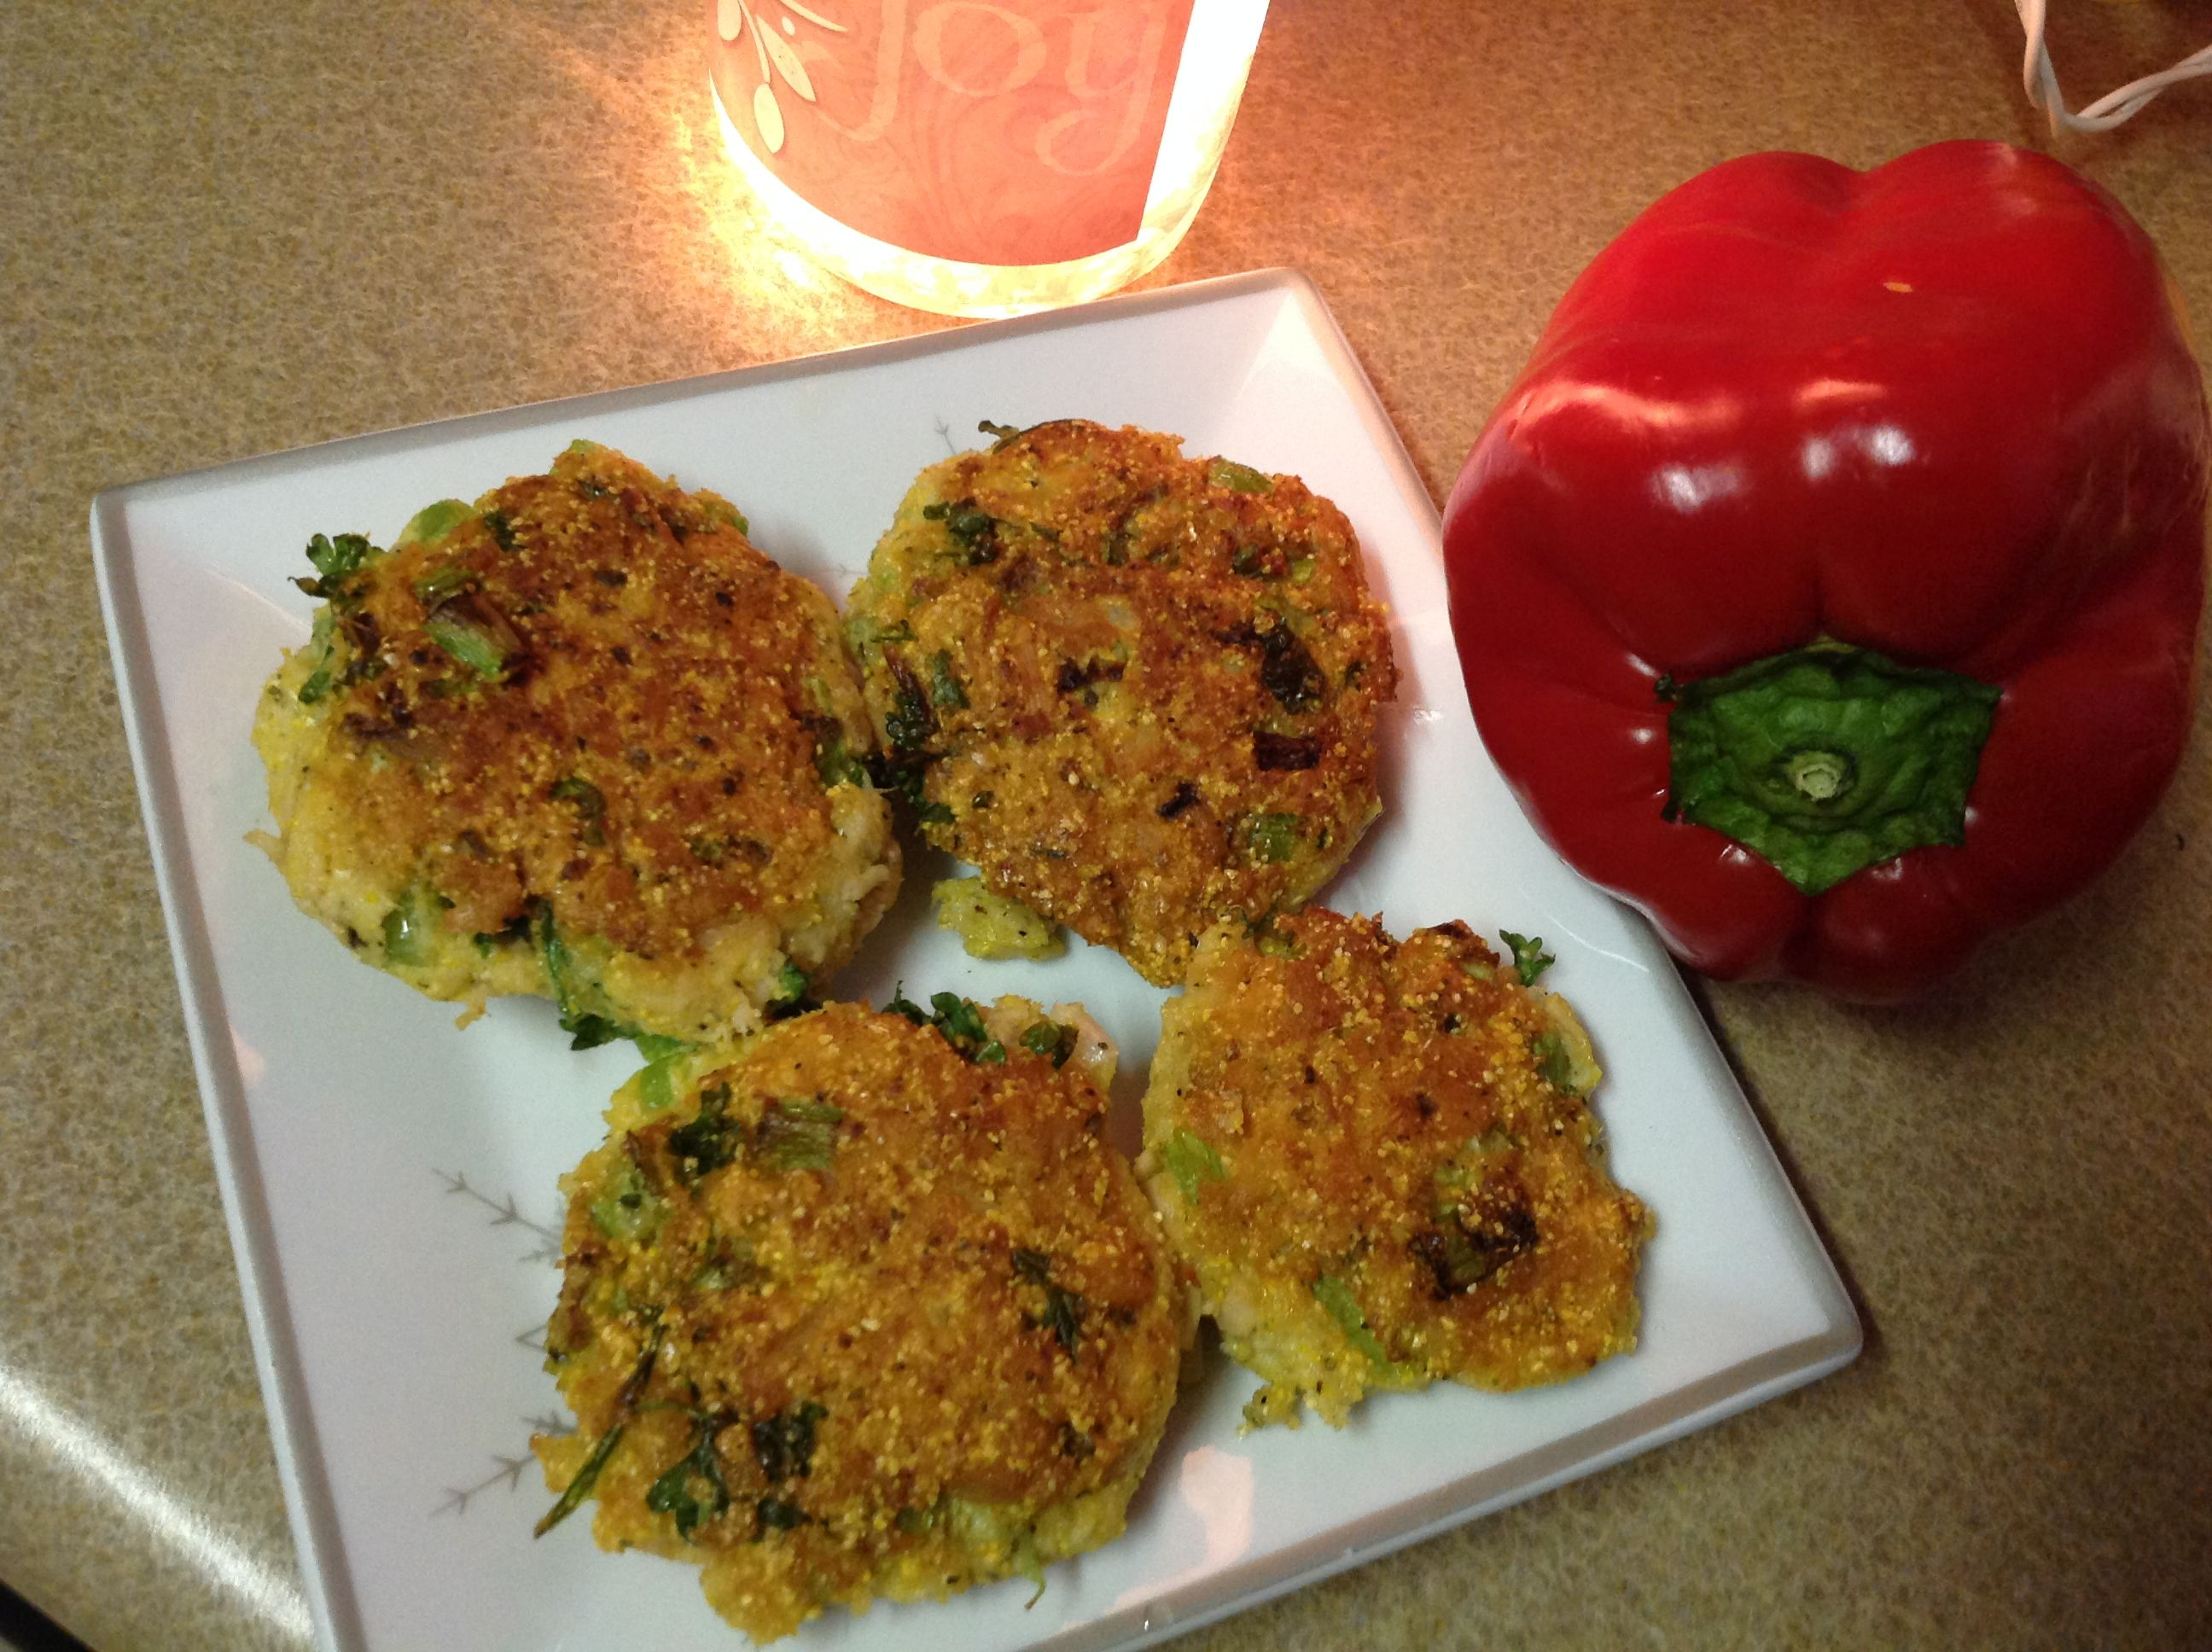 Tuna Patties - Tuna with fresh parsley, green onions and other good seasonings. They were lightly seared with grape seed oil.